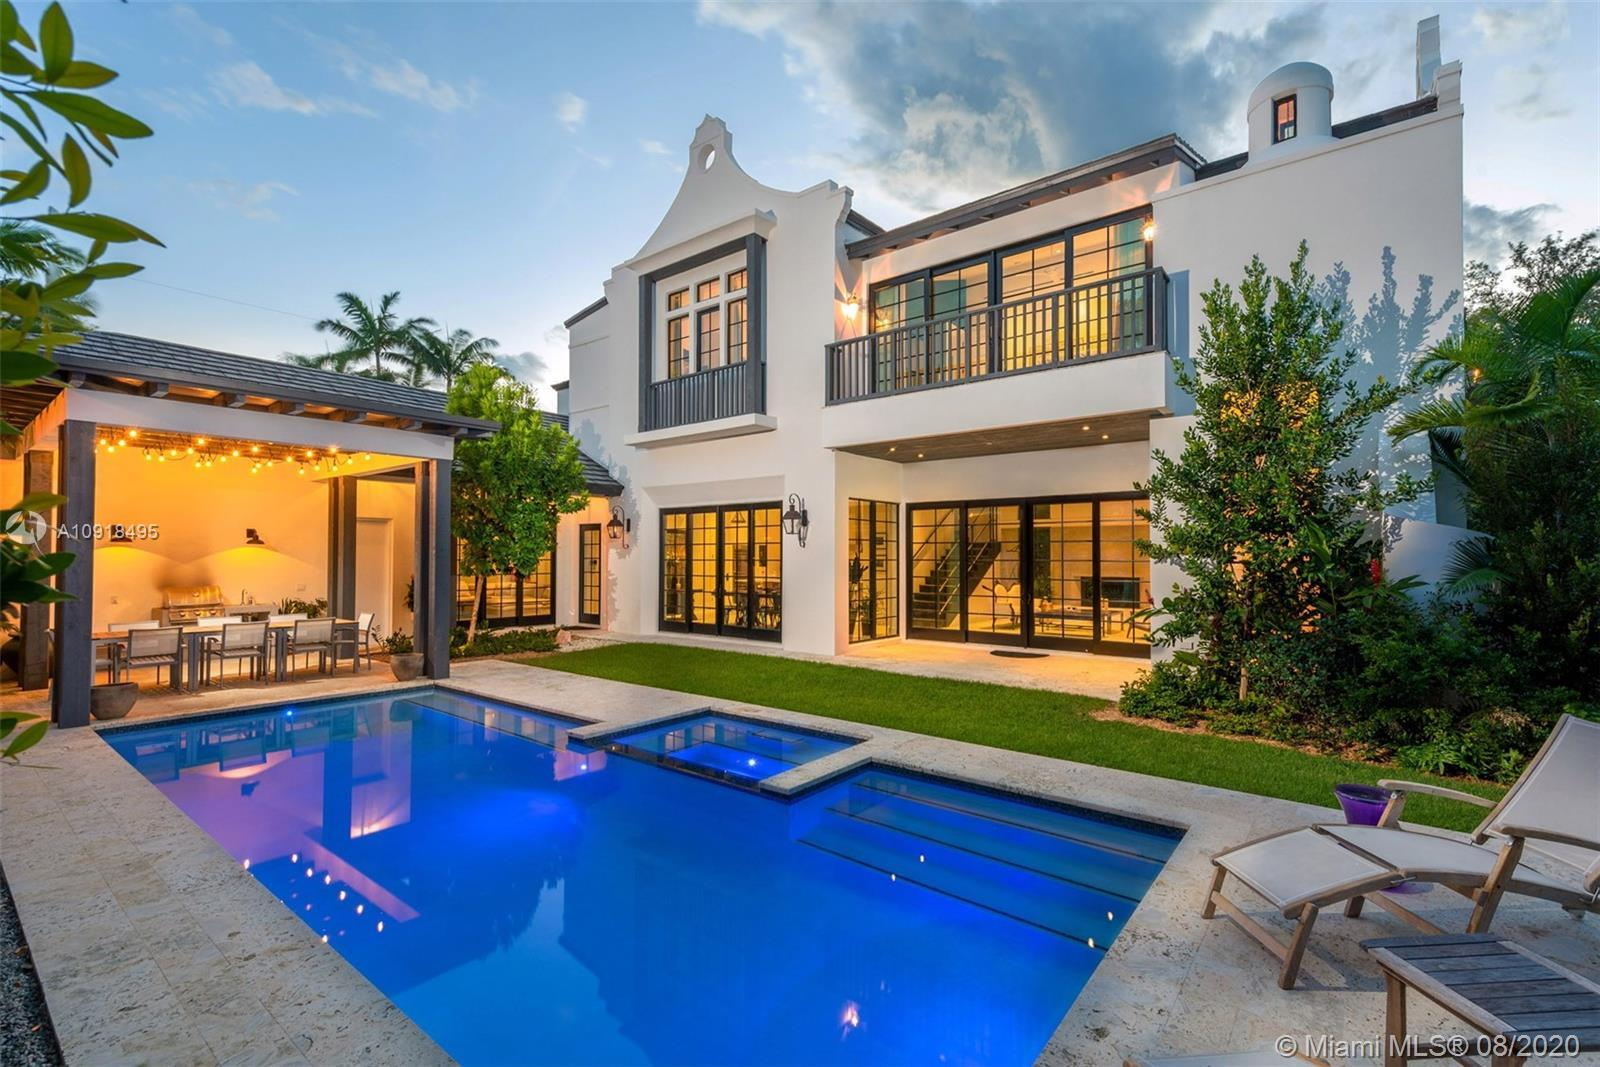 One-of-a-kind Bermudan/Cape Dutch style residence in gated Morningside! Built in 2016 & situated on